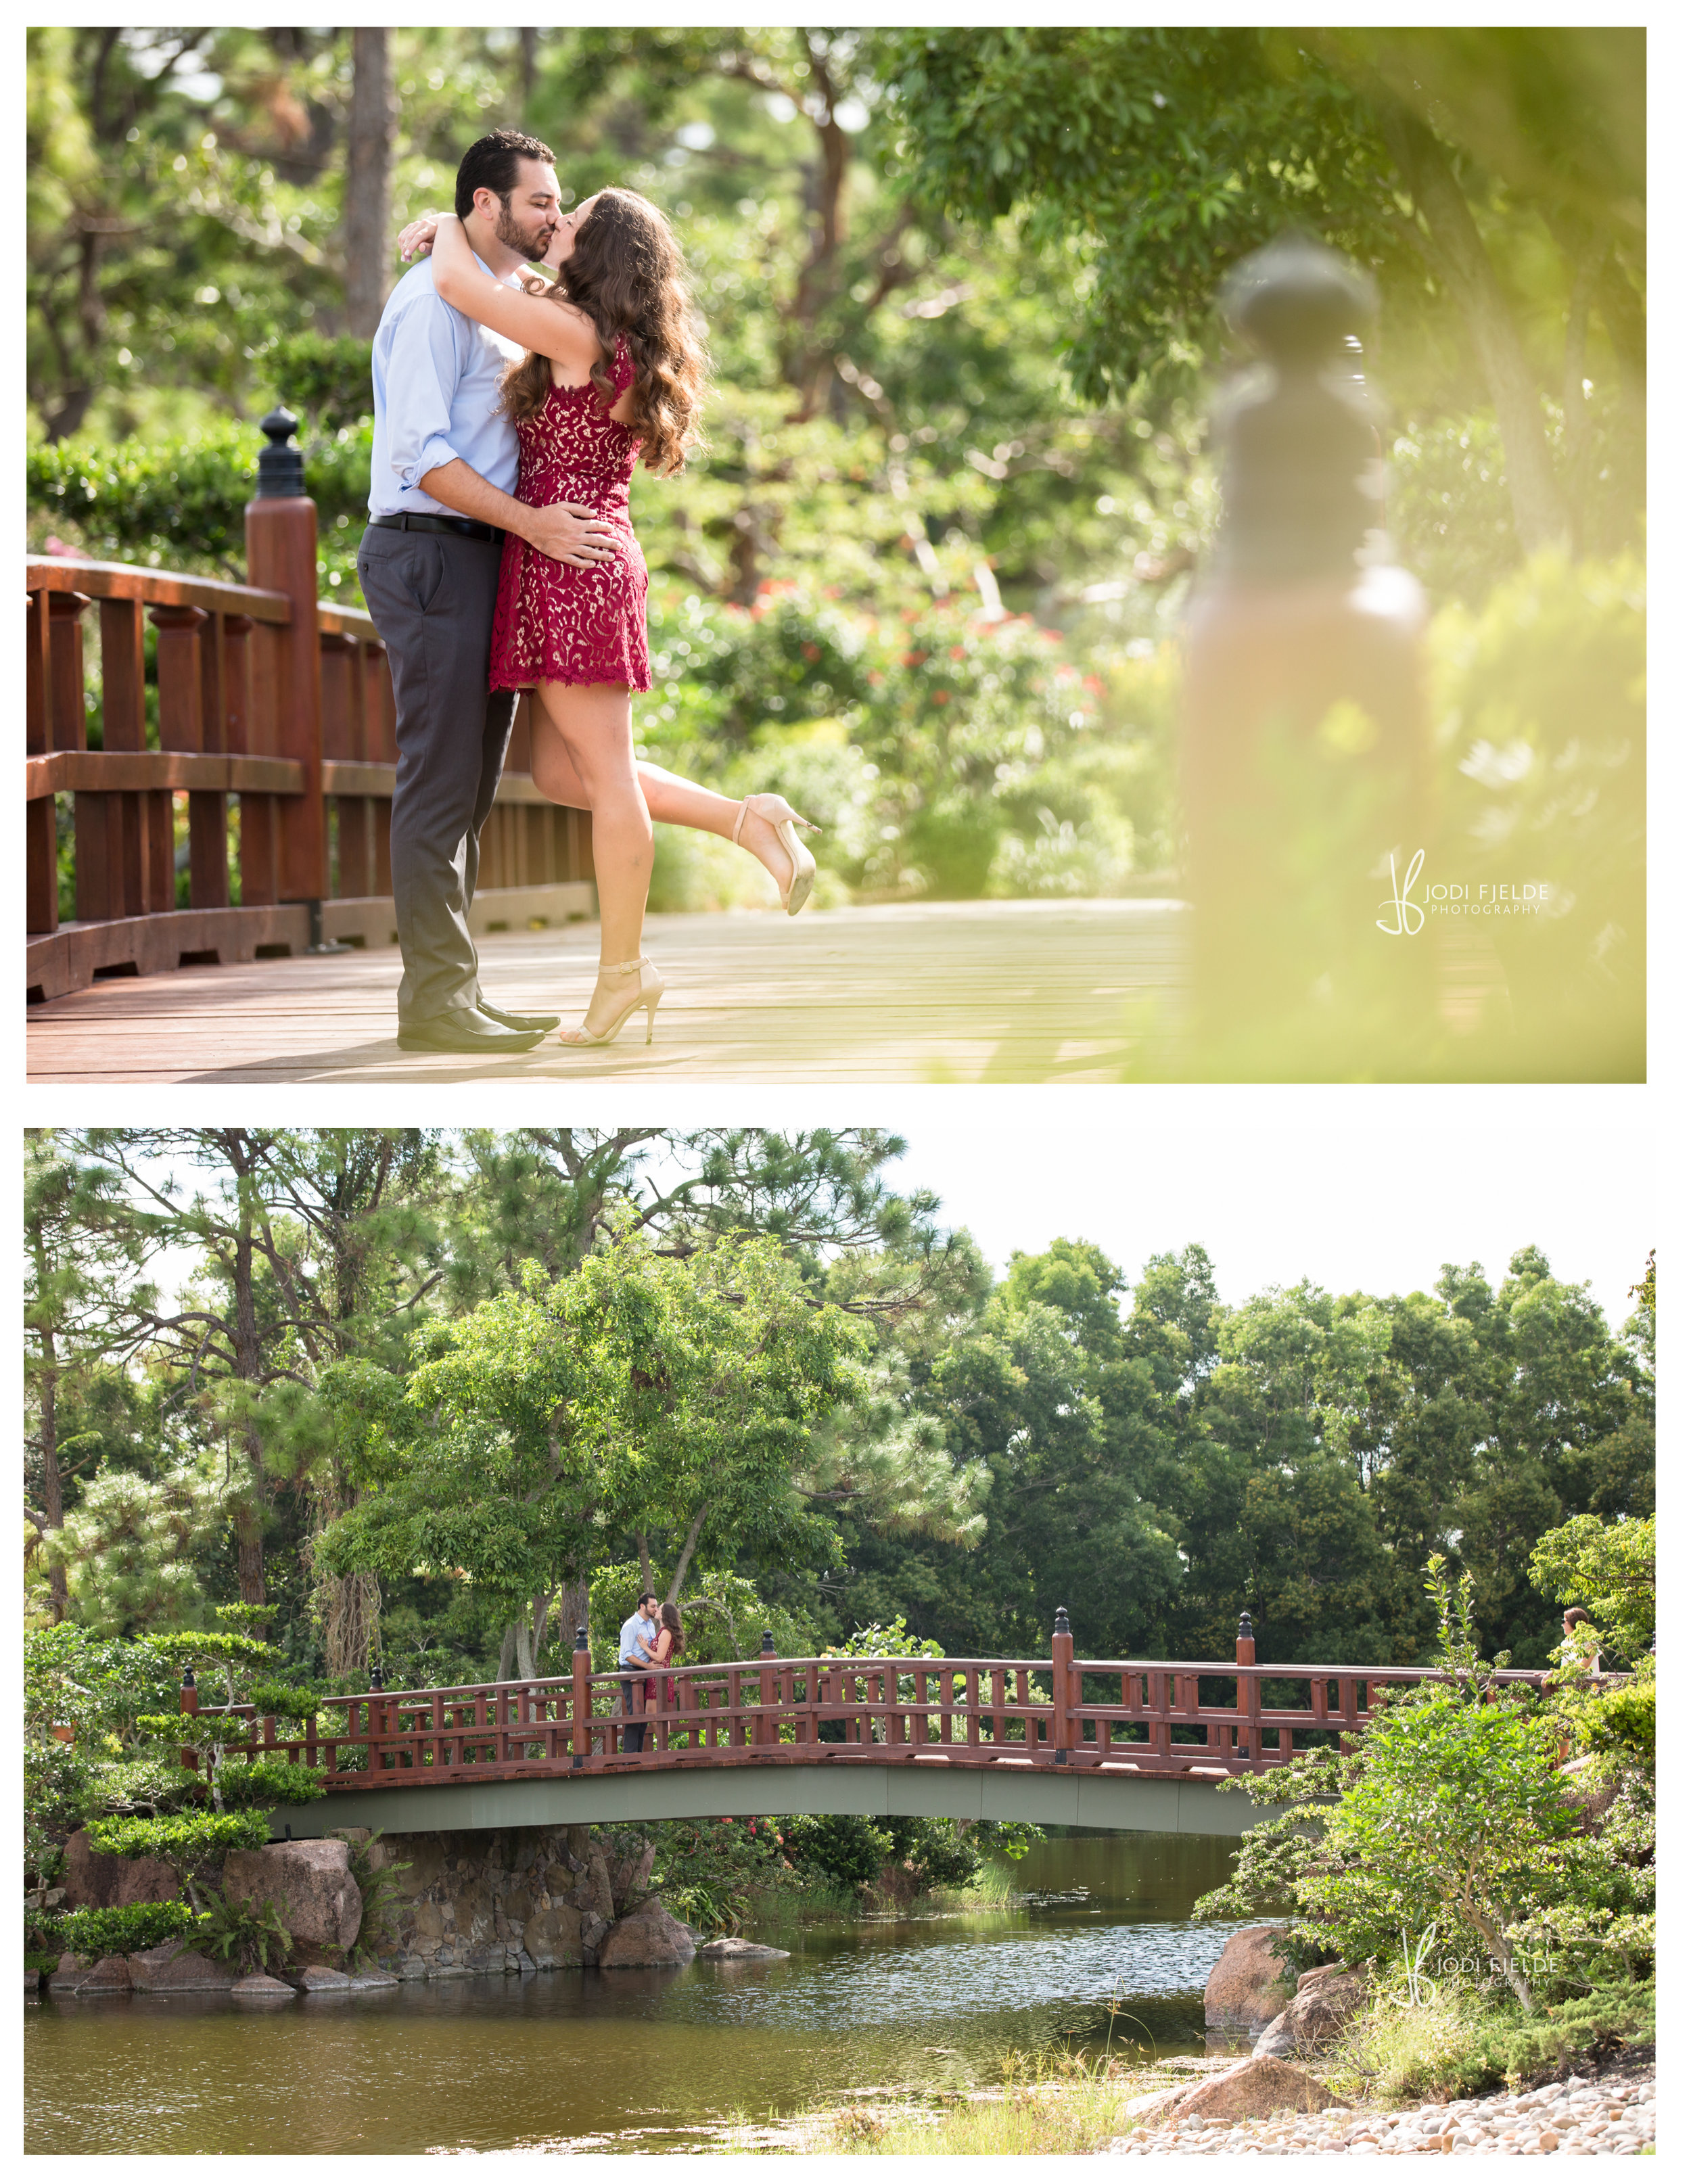 Morikami_Museum_Gardens_Delray_Beach_Engagement_Heather_and Doug_4.jpg